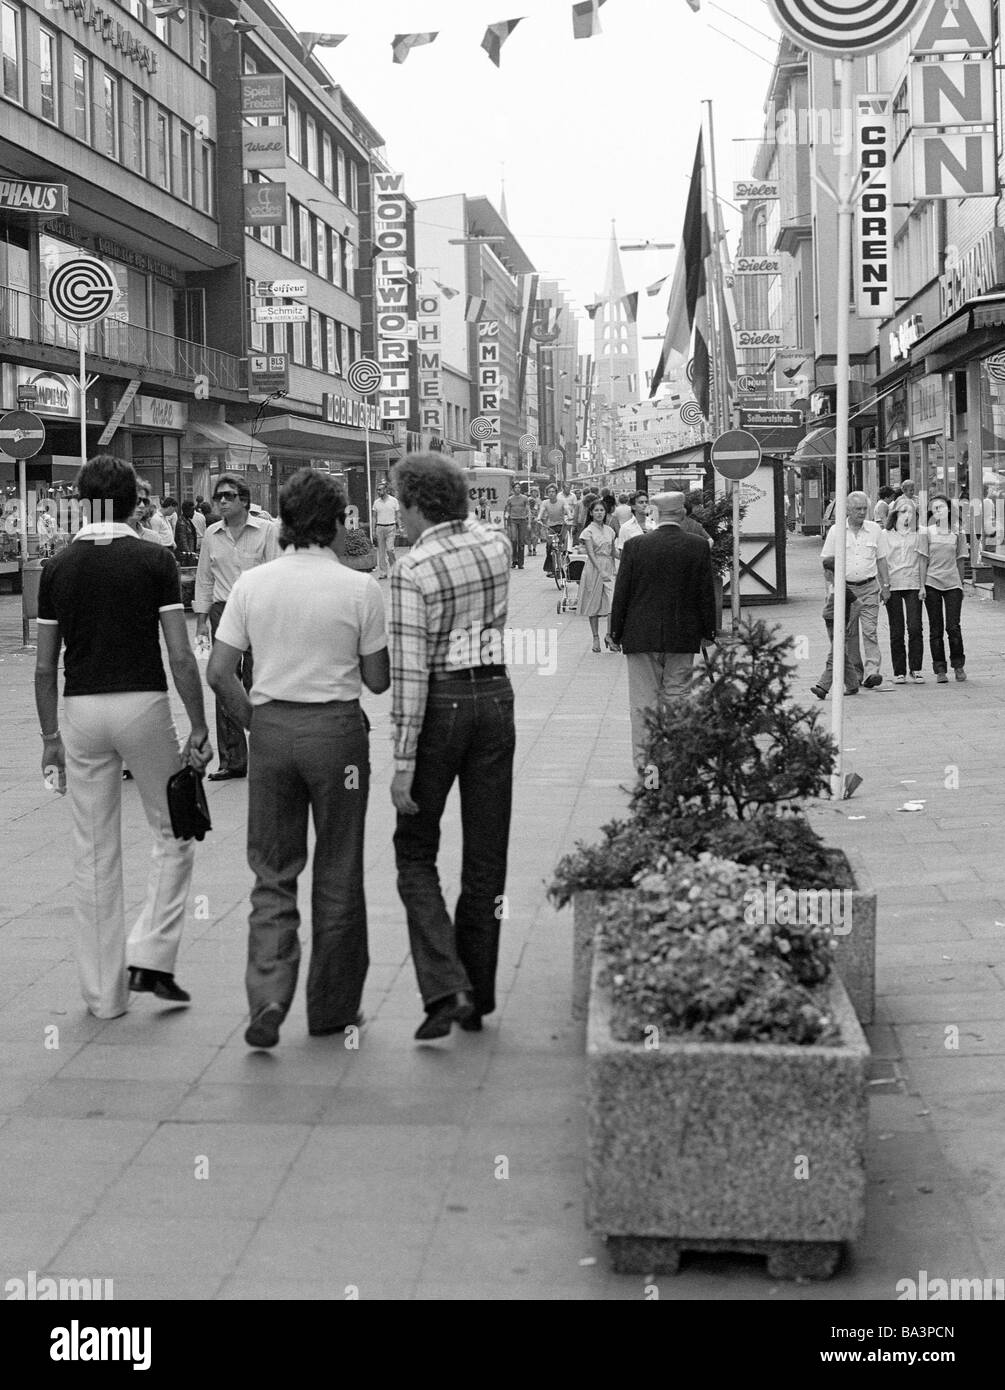 Seventies, black and white photo, people on shopping expedition, three young men, aged 25 to 30 years, shopping - Stock Image